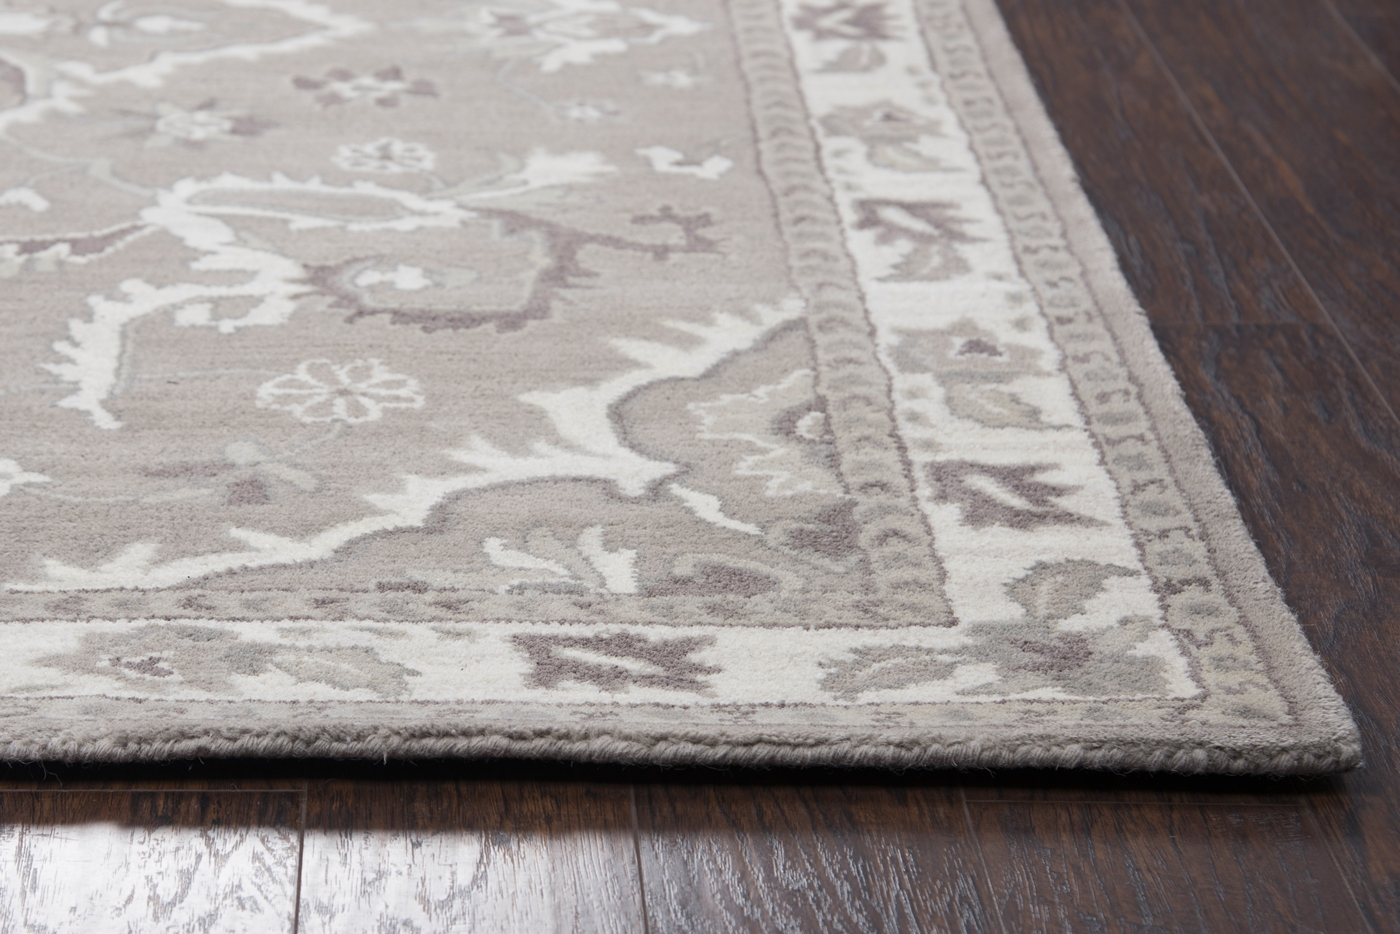 Valintino Ornamental Foliage Wool Area Rug In Gray Brown